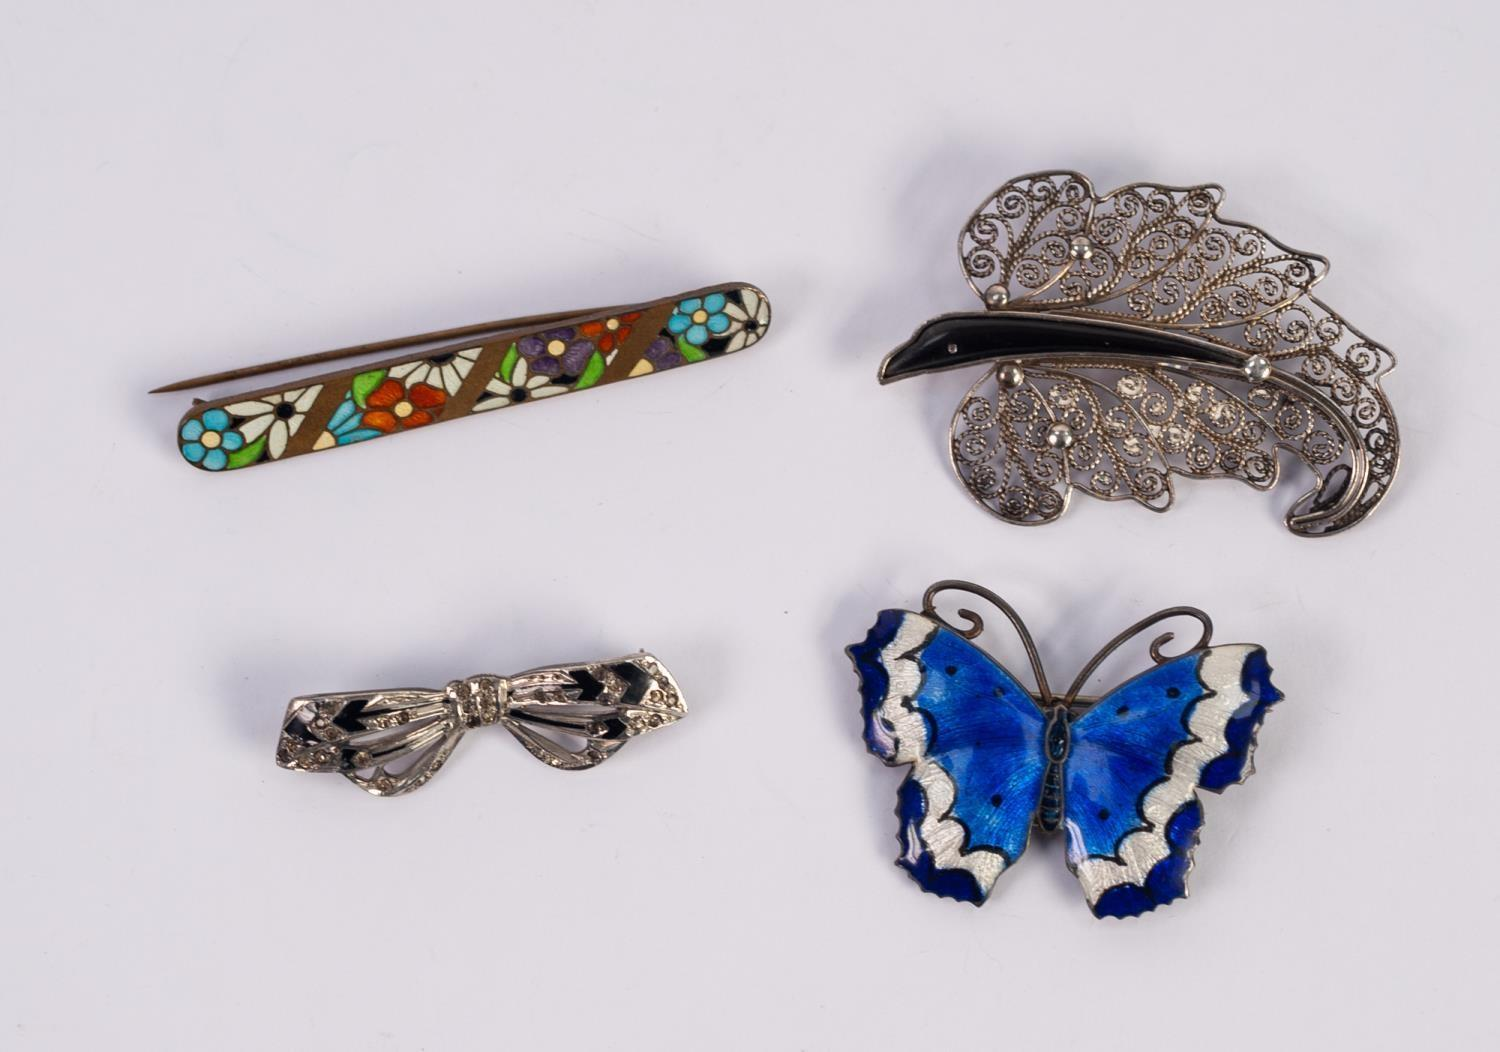 Lot 1019 - EARLY 20th CENTURY STERLING SILVER AND GUILLOCHE ENAMEL BUTTERFLY BROOCH in two shades of blue and